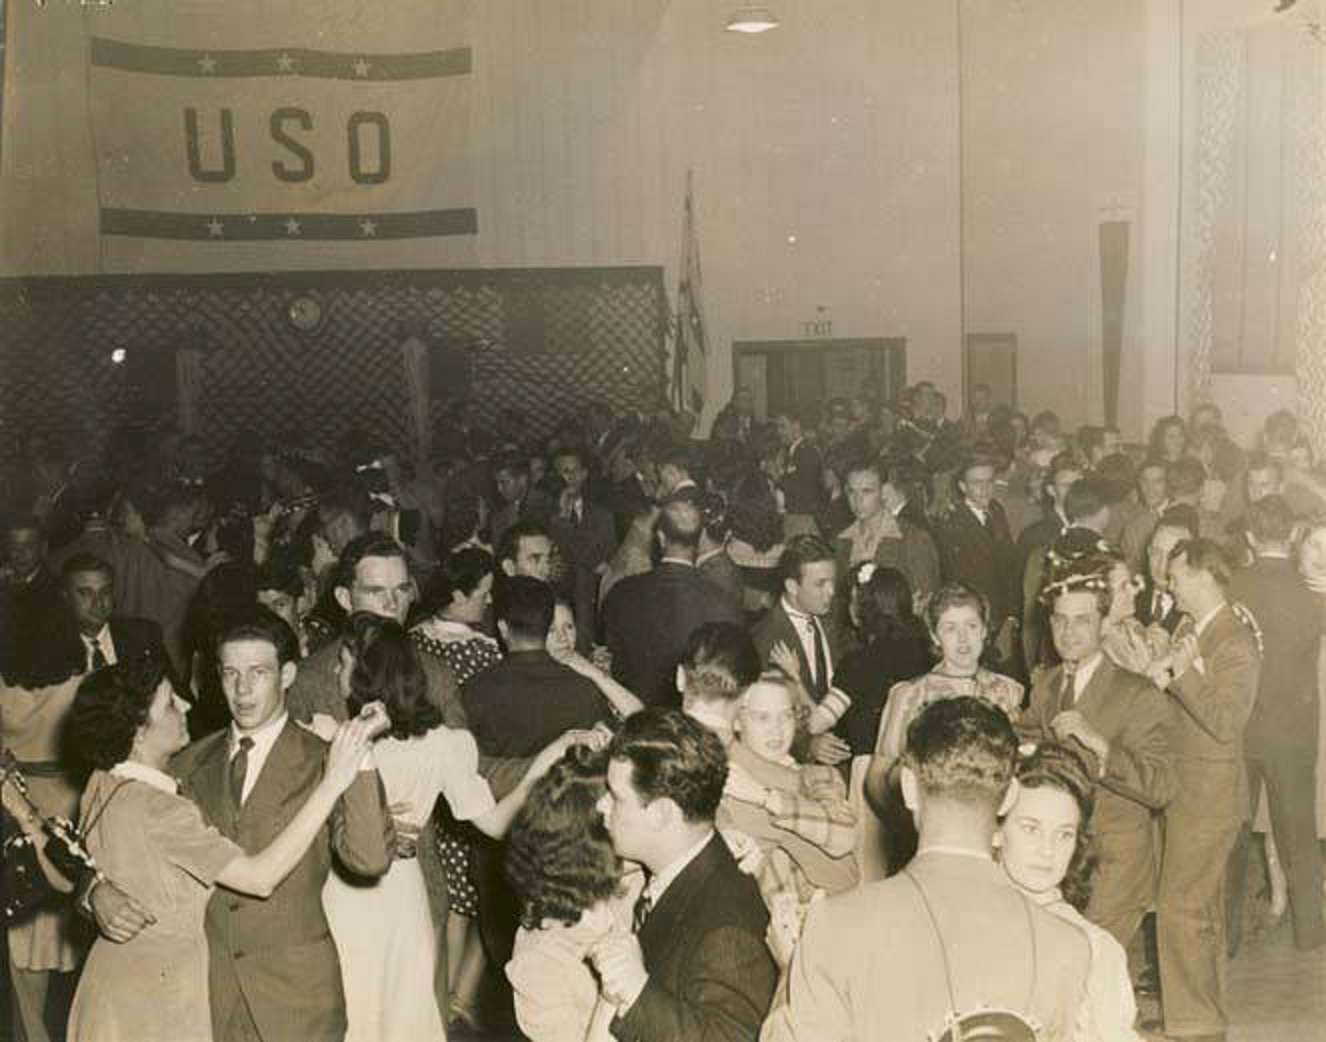 Talladega's Spring Street Recreational Center was once the home of the USO club